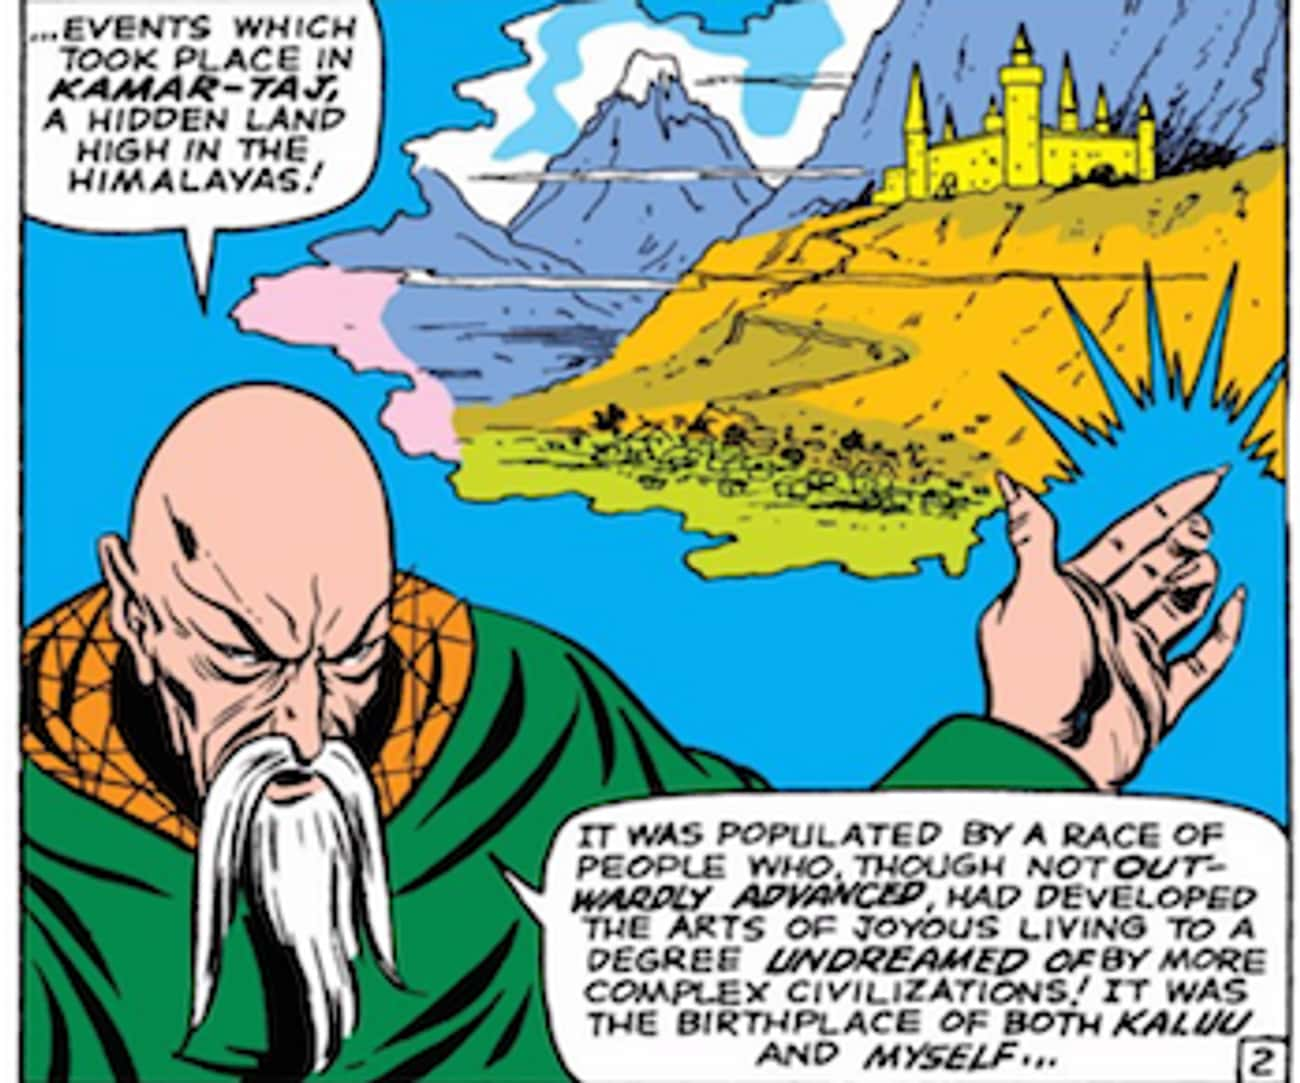 Eastern Mysticism Abounds is listed (or ranked) 1 on the list Everything Doctor Strange Basically Stole from The Shadow